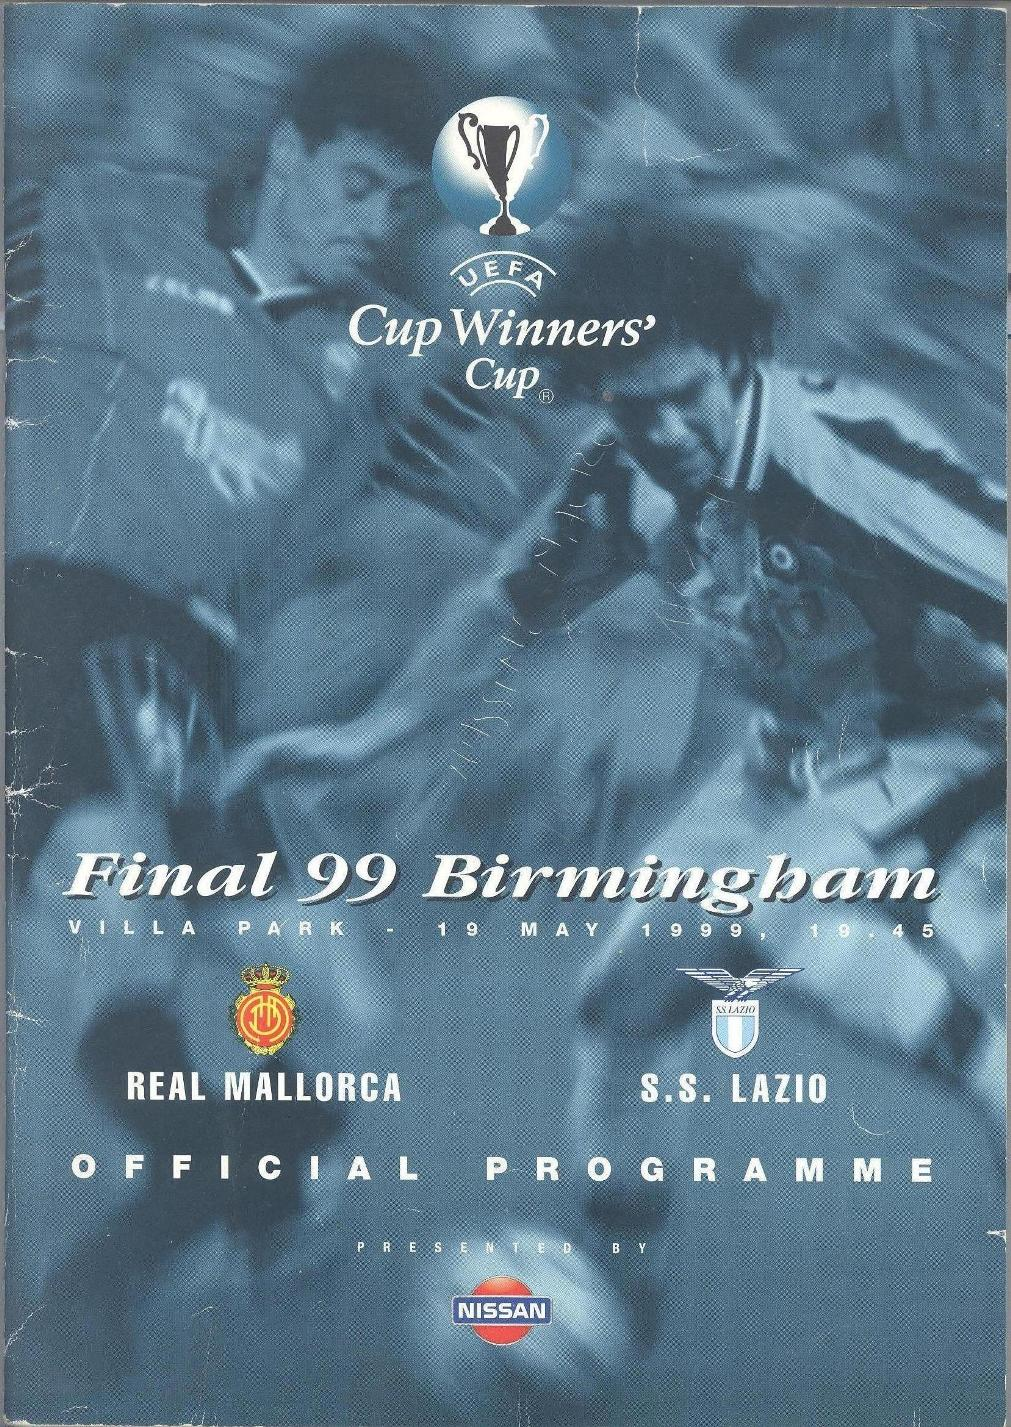 Official Programme 19mag1999 - Cover.jpg